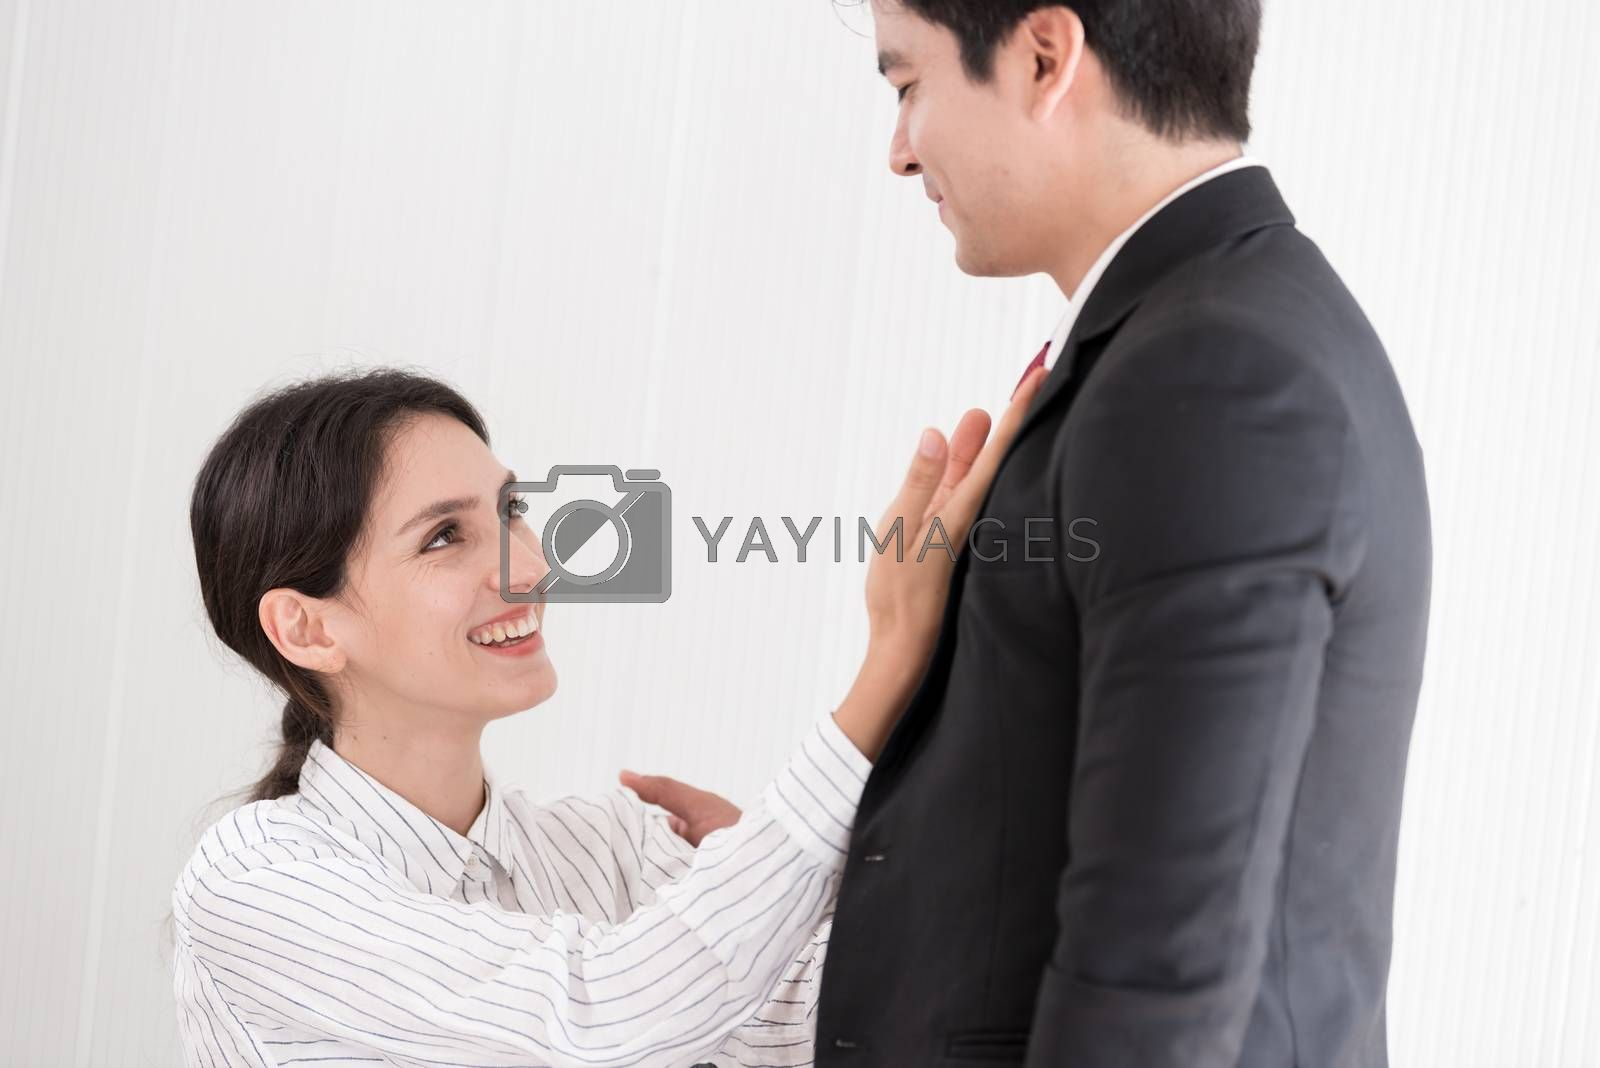 Wife tying red necktie to her husband in the office with smiling by animagesdesign